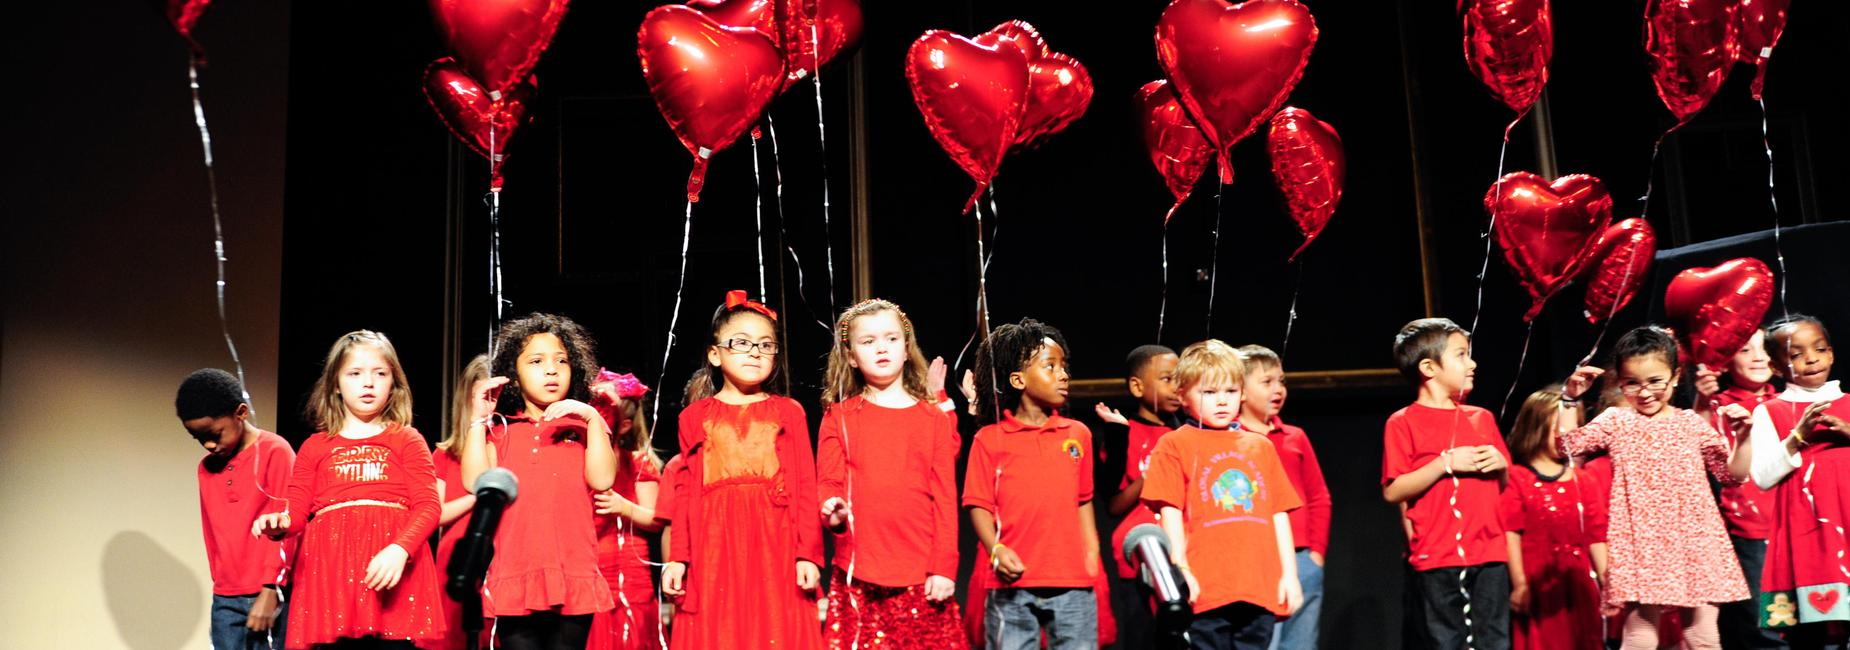 Children dressed in red with heart-shaped balloons